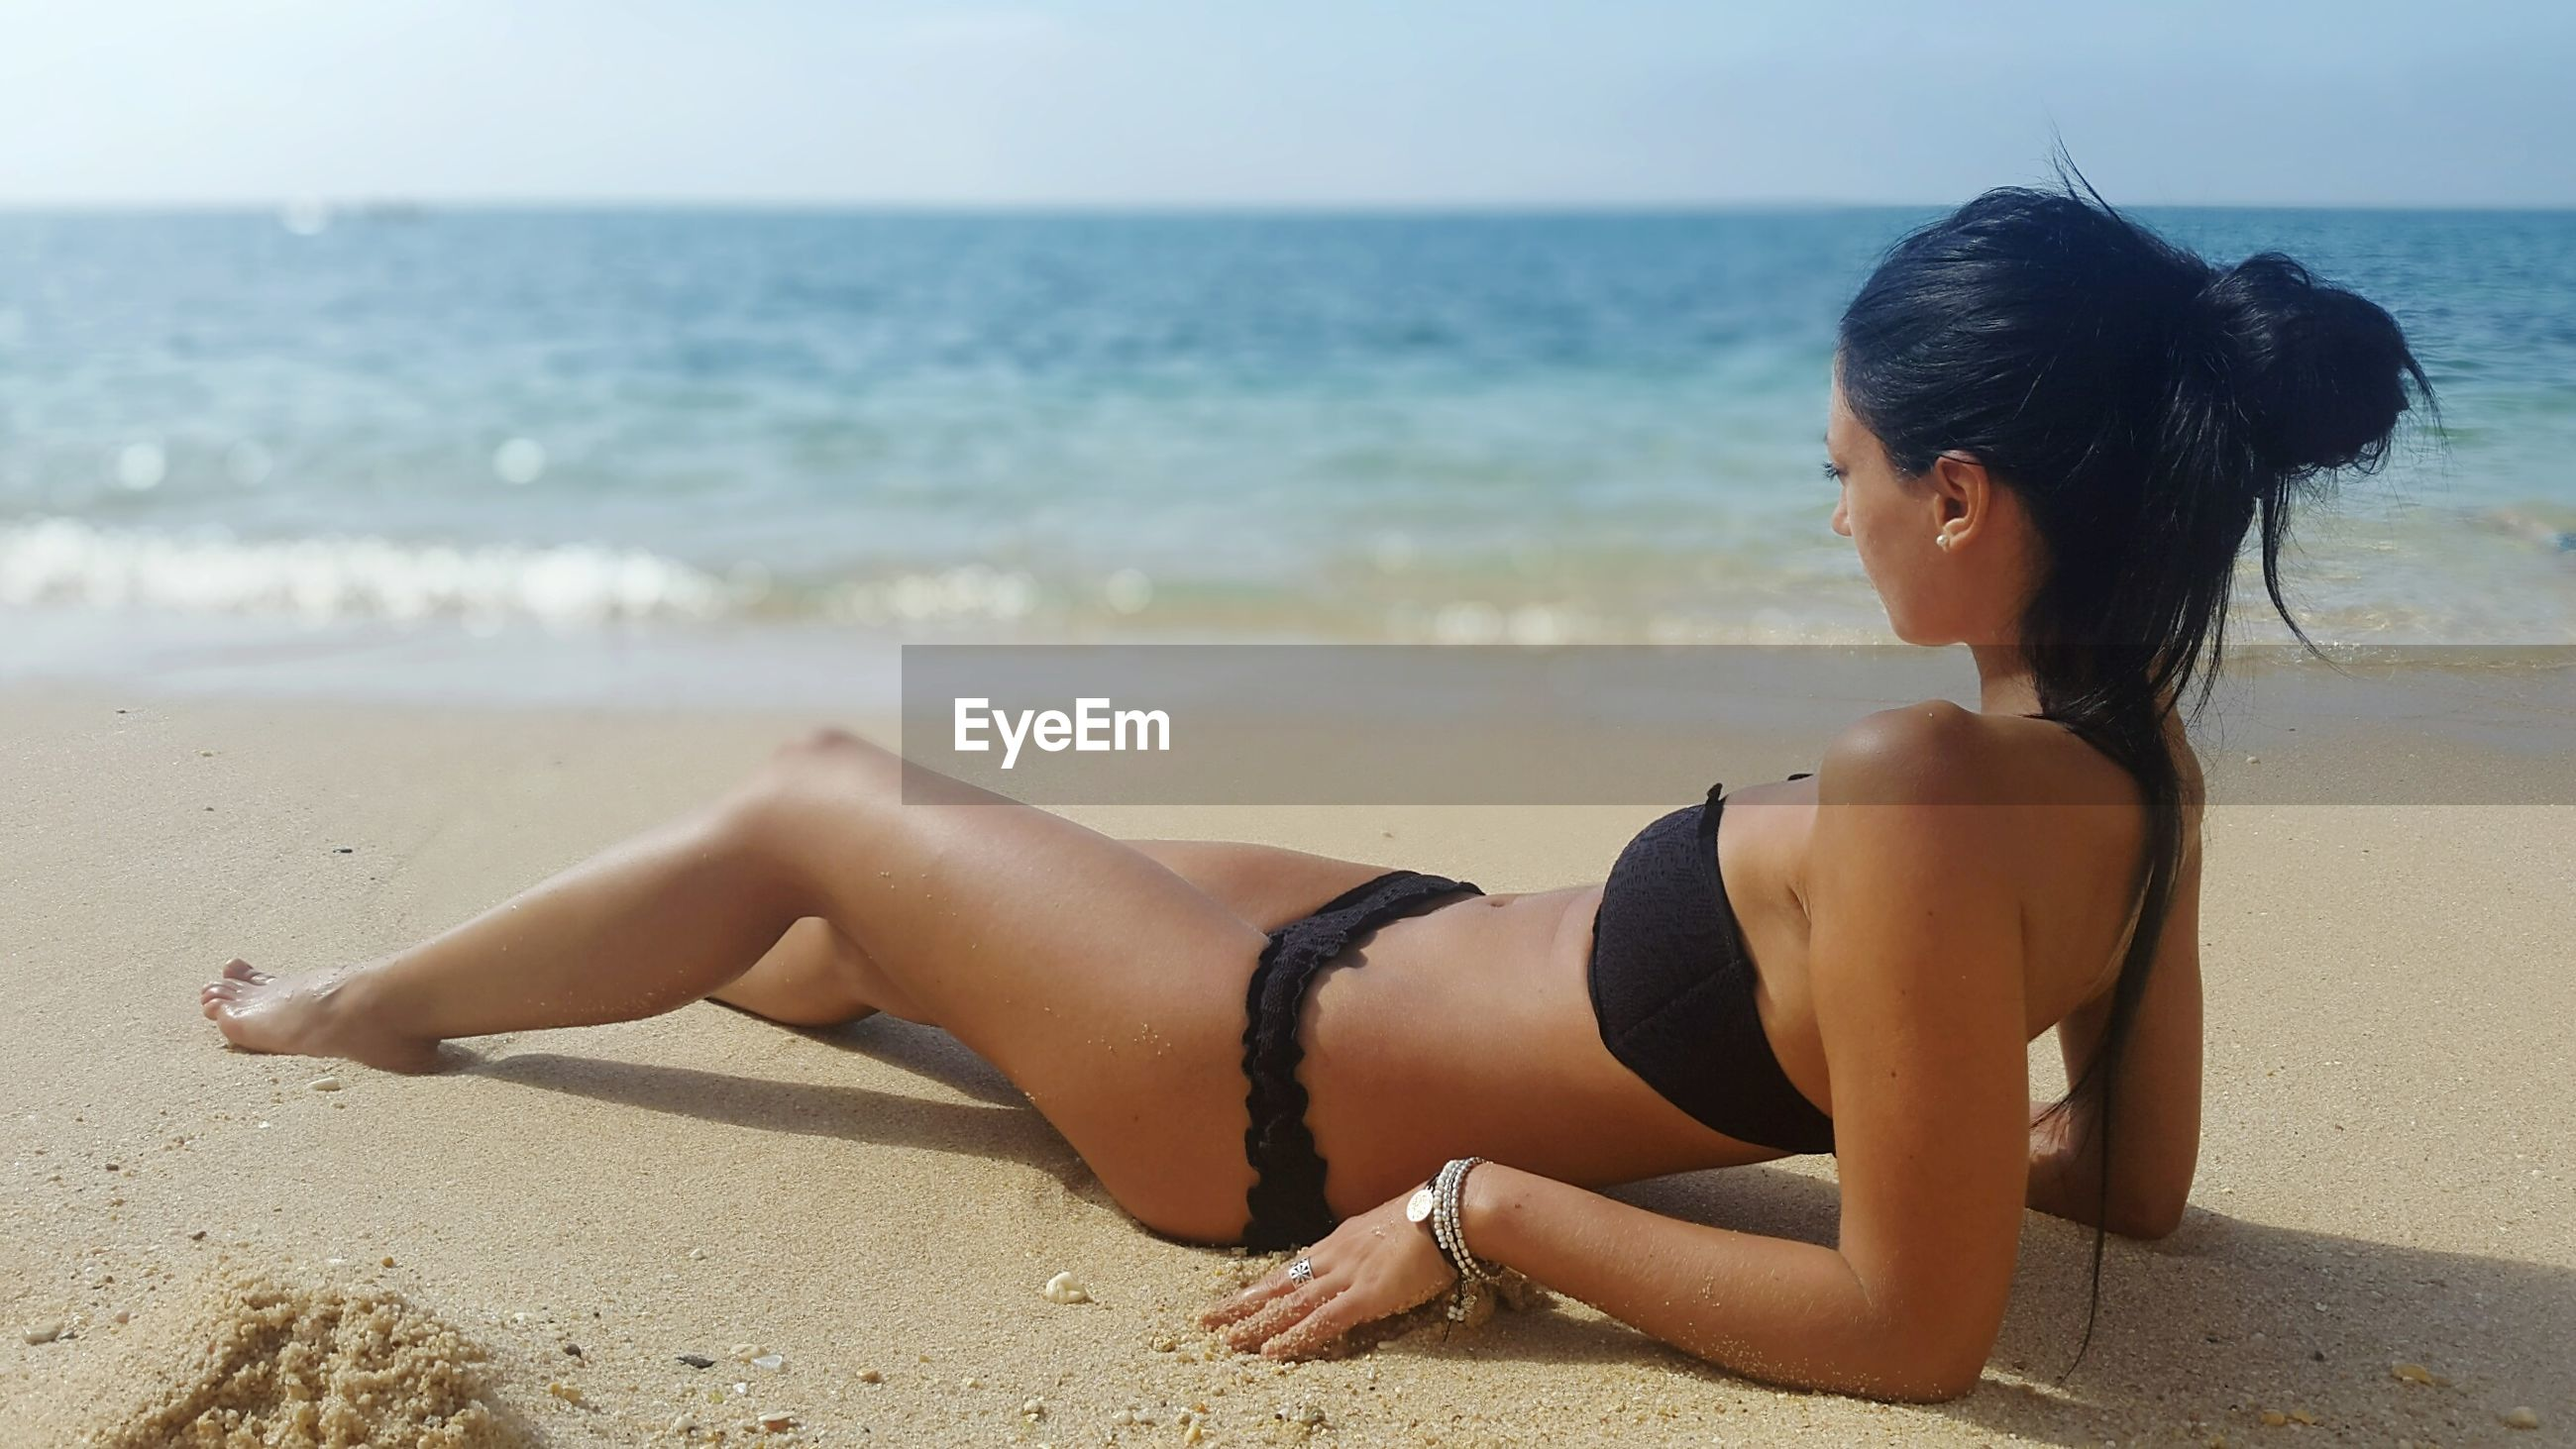 beach, sea, horizon over water, shore, sand, water, lifestyles, leisure activity, vacations, young women, relaxation, young adult, person, full length, sitting, summer, sky